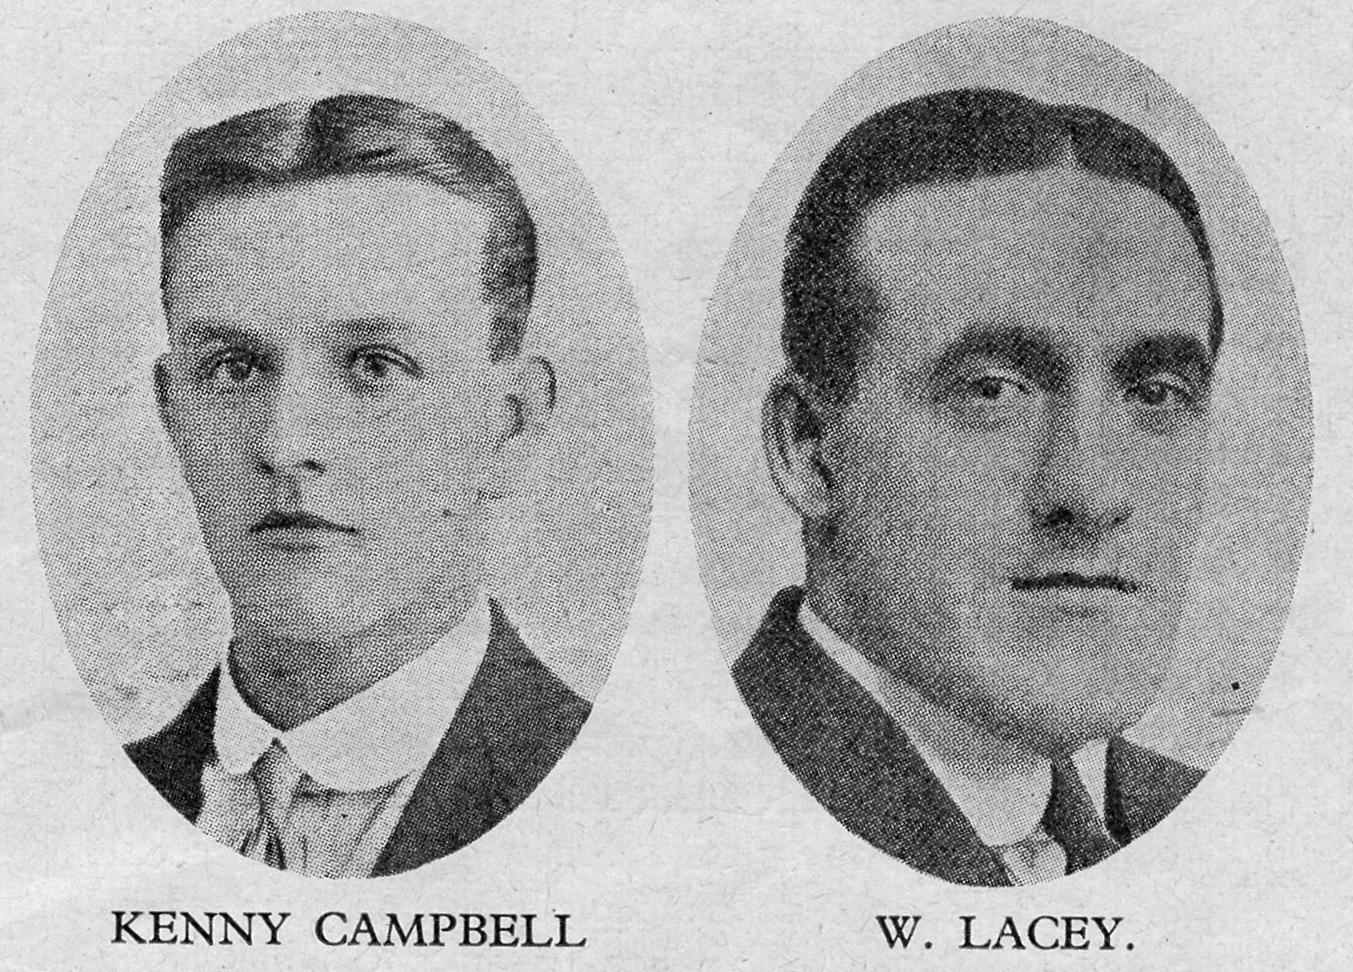 Billy Lacey and Ken Campbell profile pics